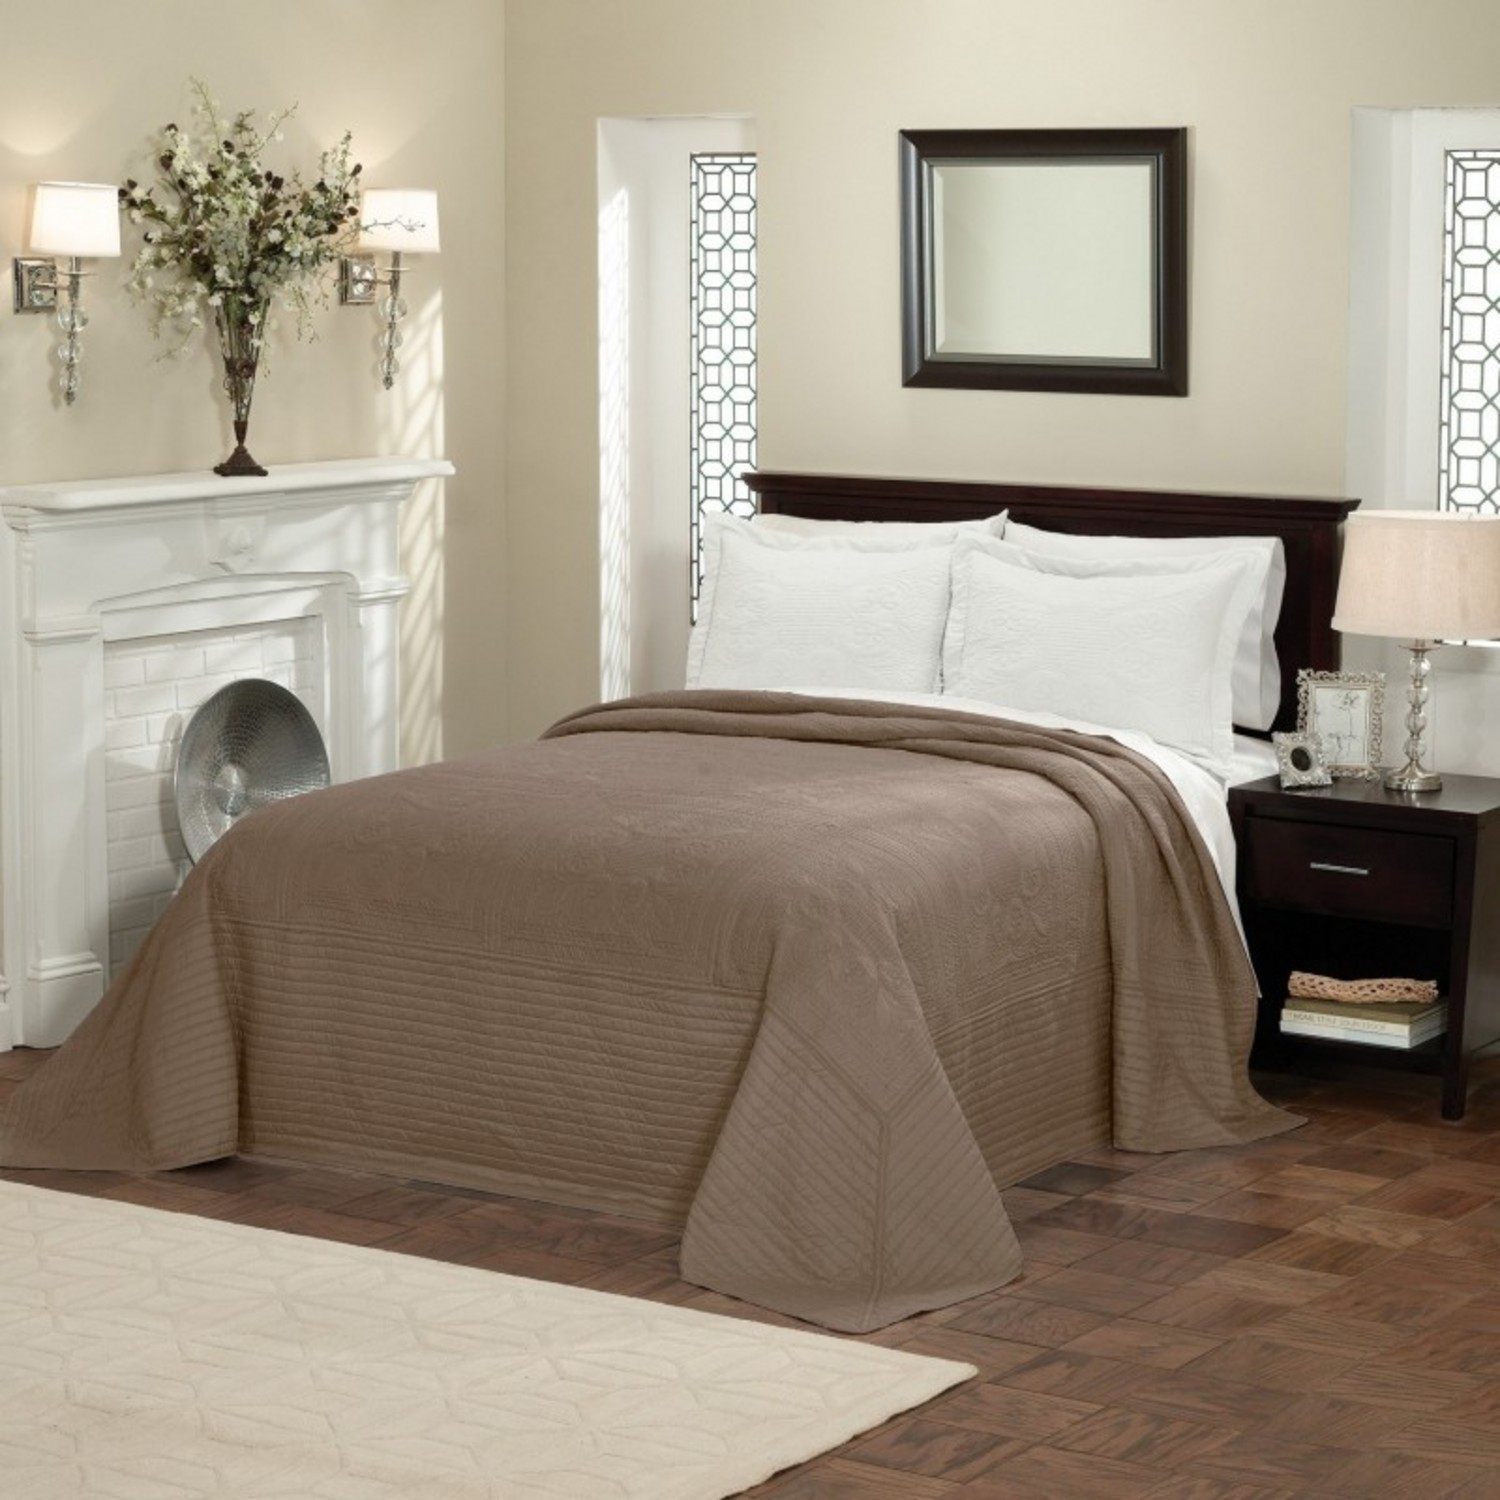 French Tile Quilted Taupe Bedspread By American Traditions